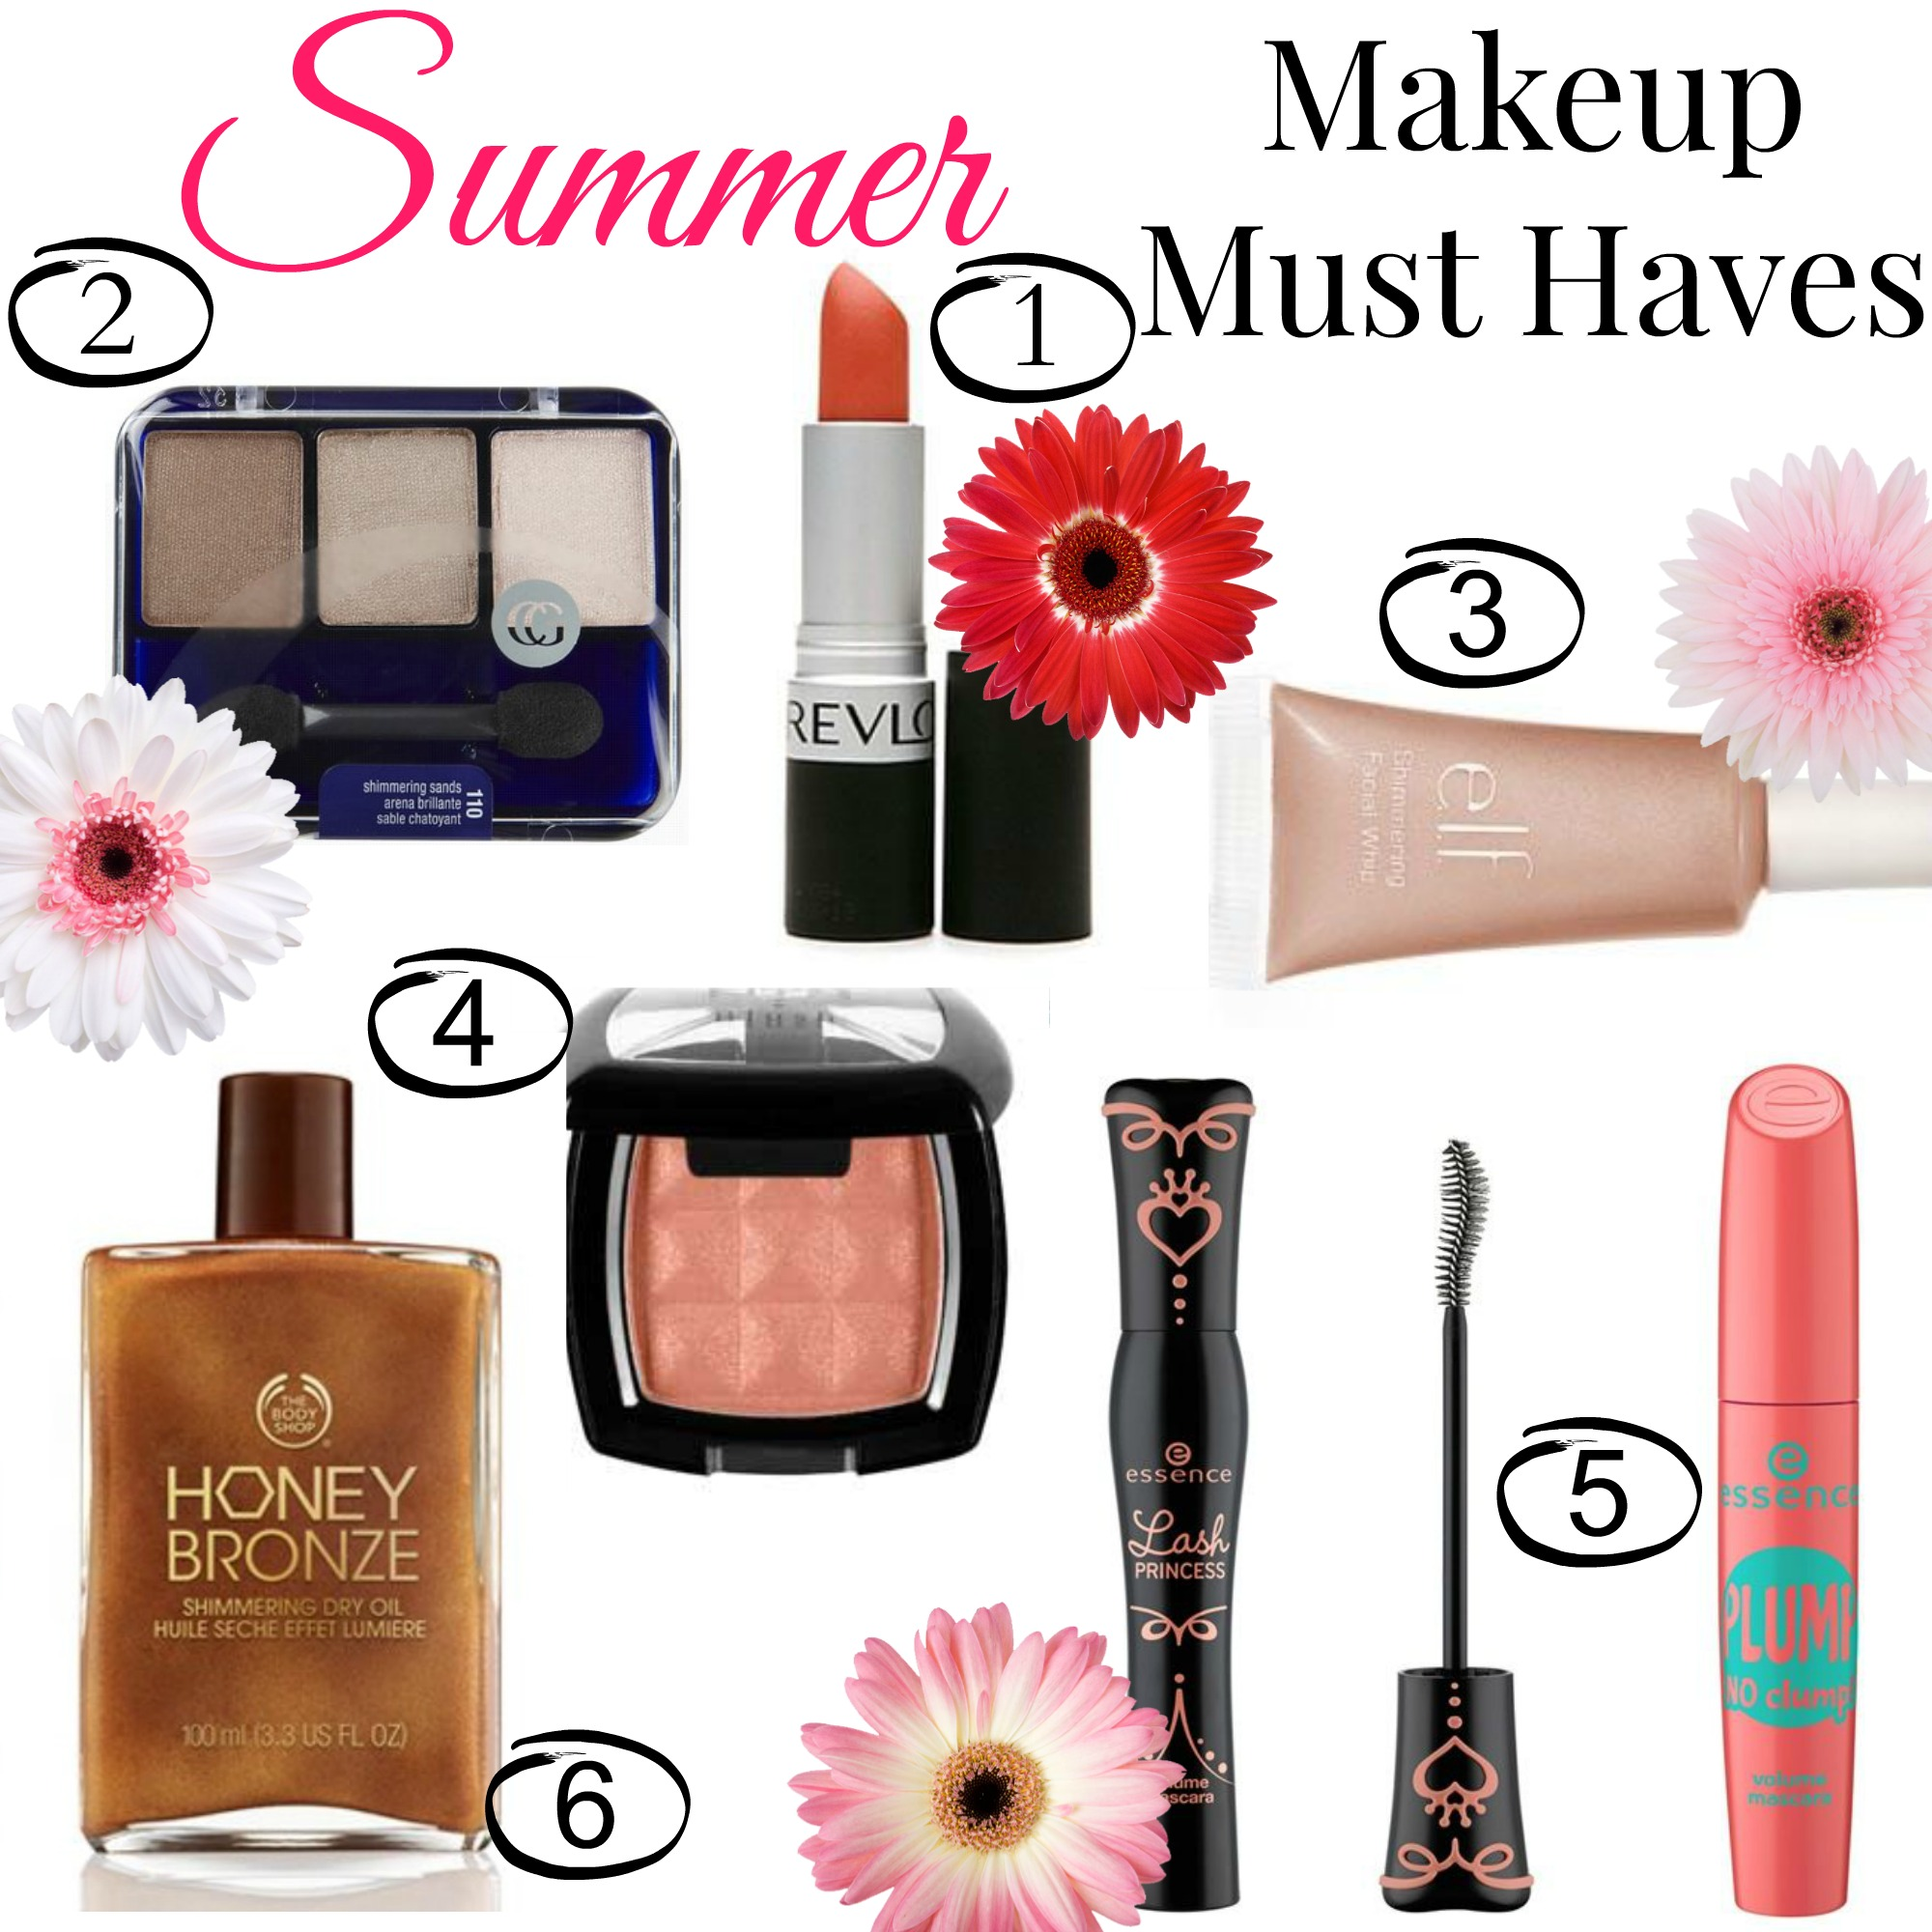 summer makeup must haves - Makeup Must Haves